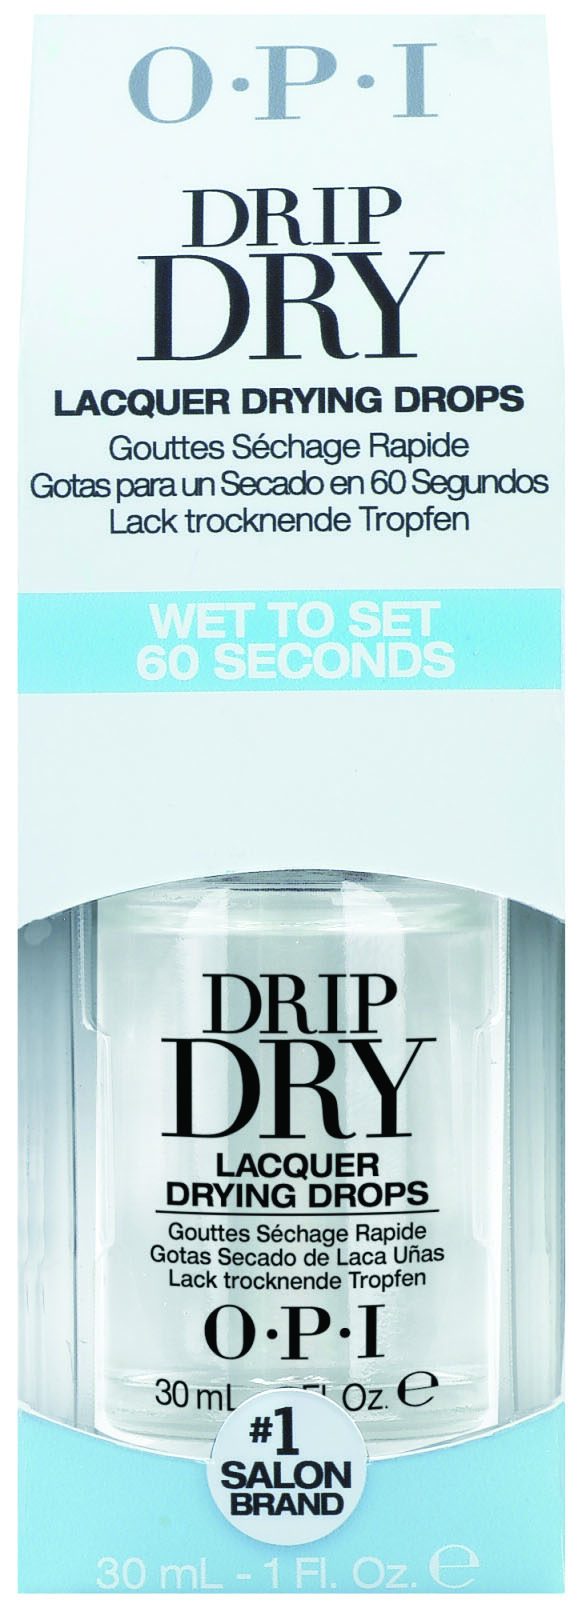 """<p>With a couple of drops, <a href=""""http://www.opi.com"""">OPI</a>&rsquo;s Drip Dry dries nails to the touch in one minute and completely in five. Made with jojoba and vitamin E, the product also treats cuticles to a soothing dose of vitamins and antioxidants. To use, wait 60 seconds after applying nail lacquer and top coat.</p>"""